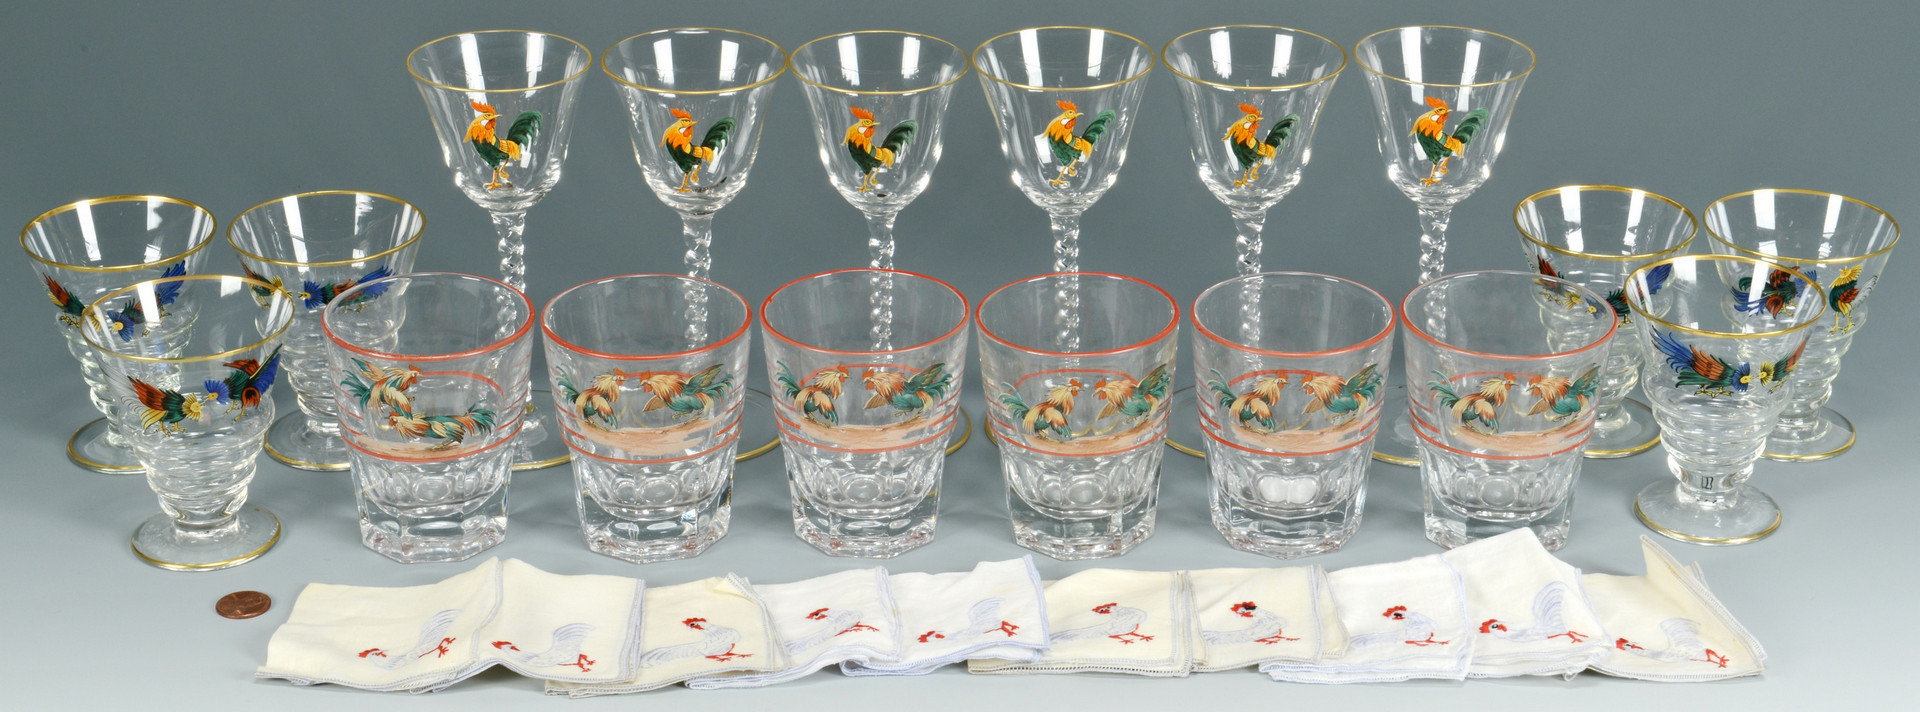 Lot 553: 18 pcs Dorflinger Rooster Glassware plus 10 napkin